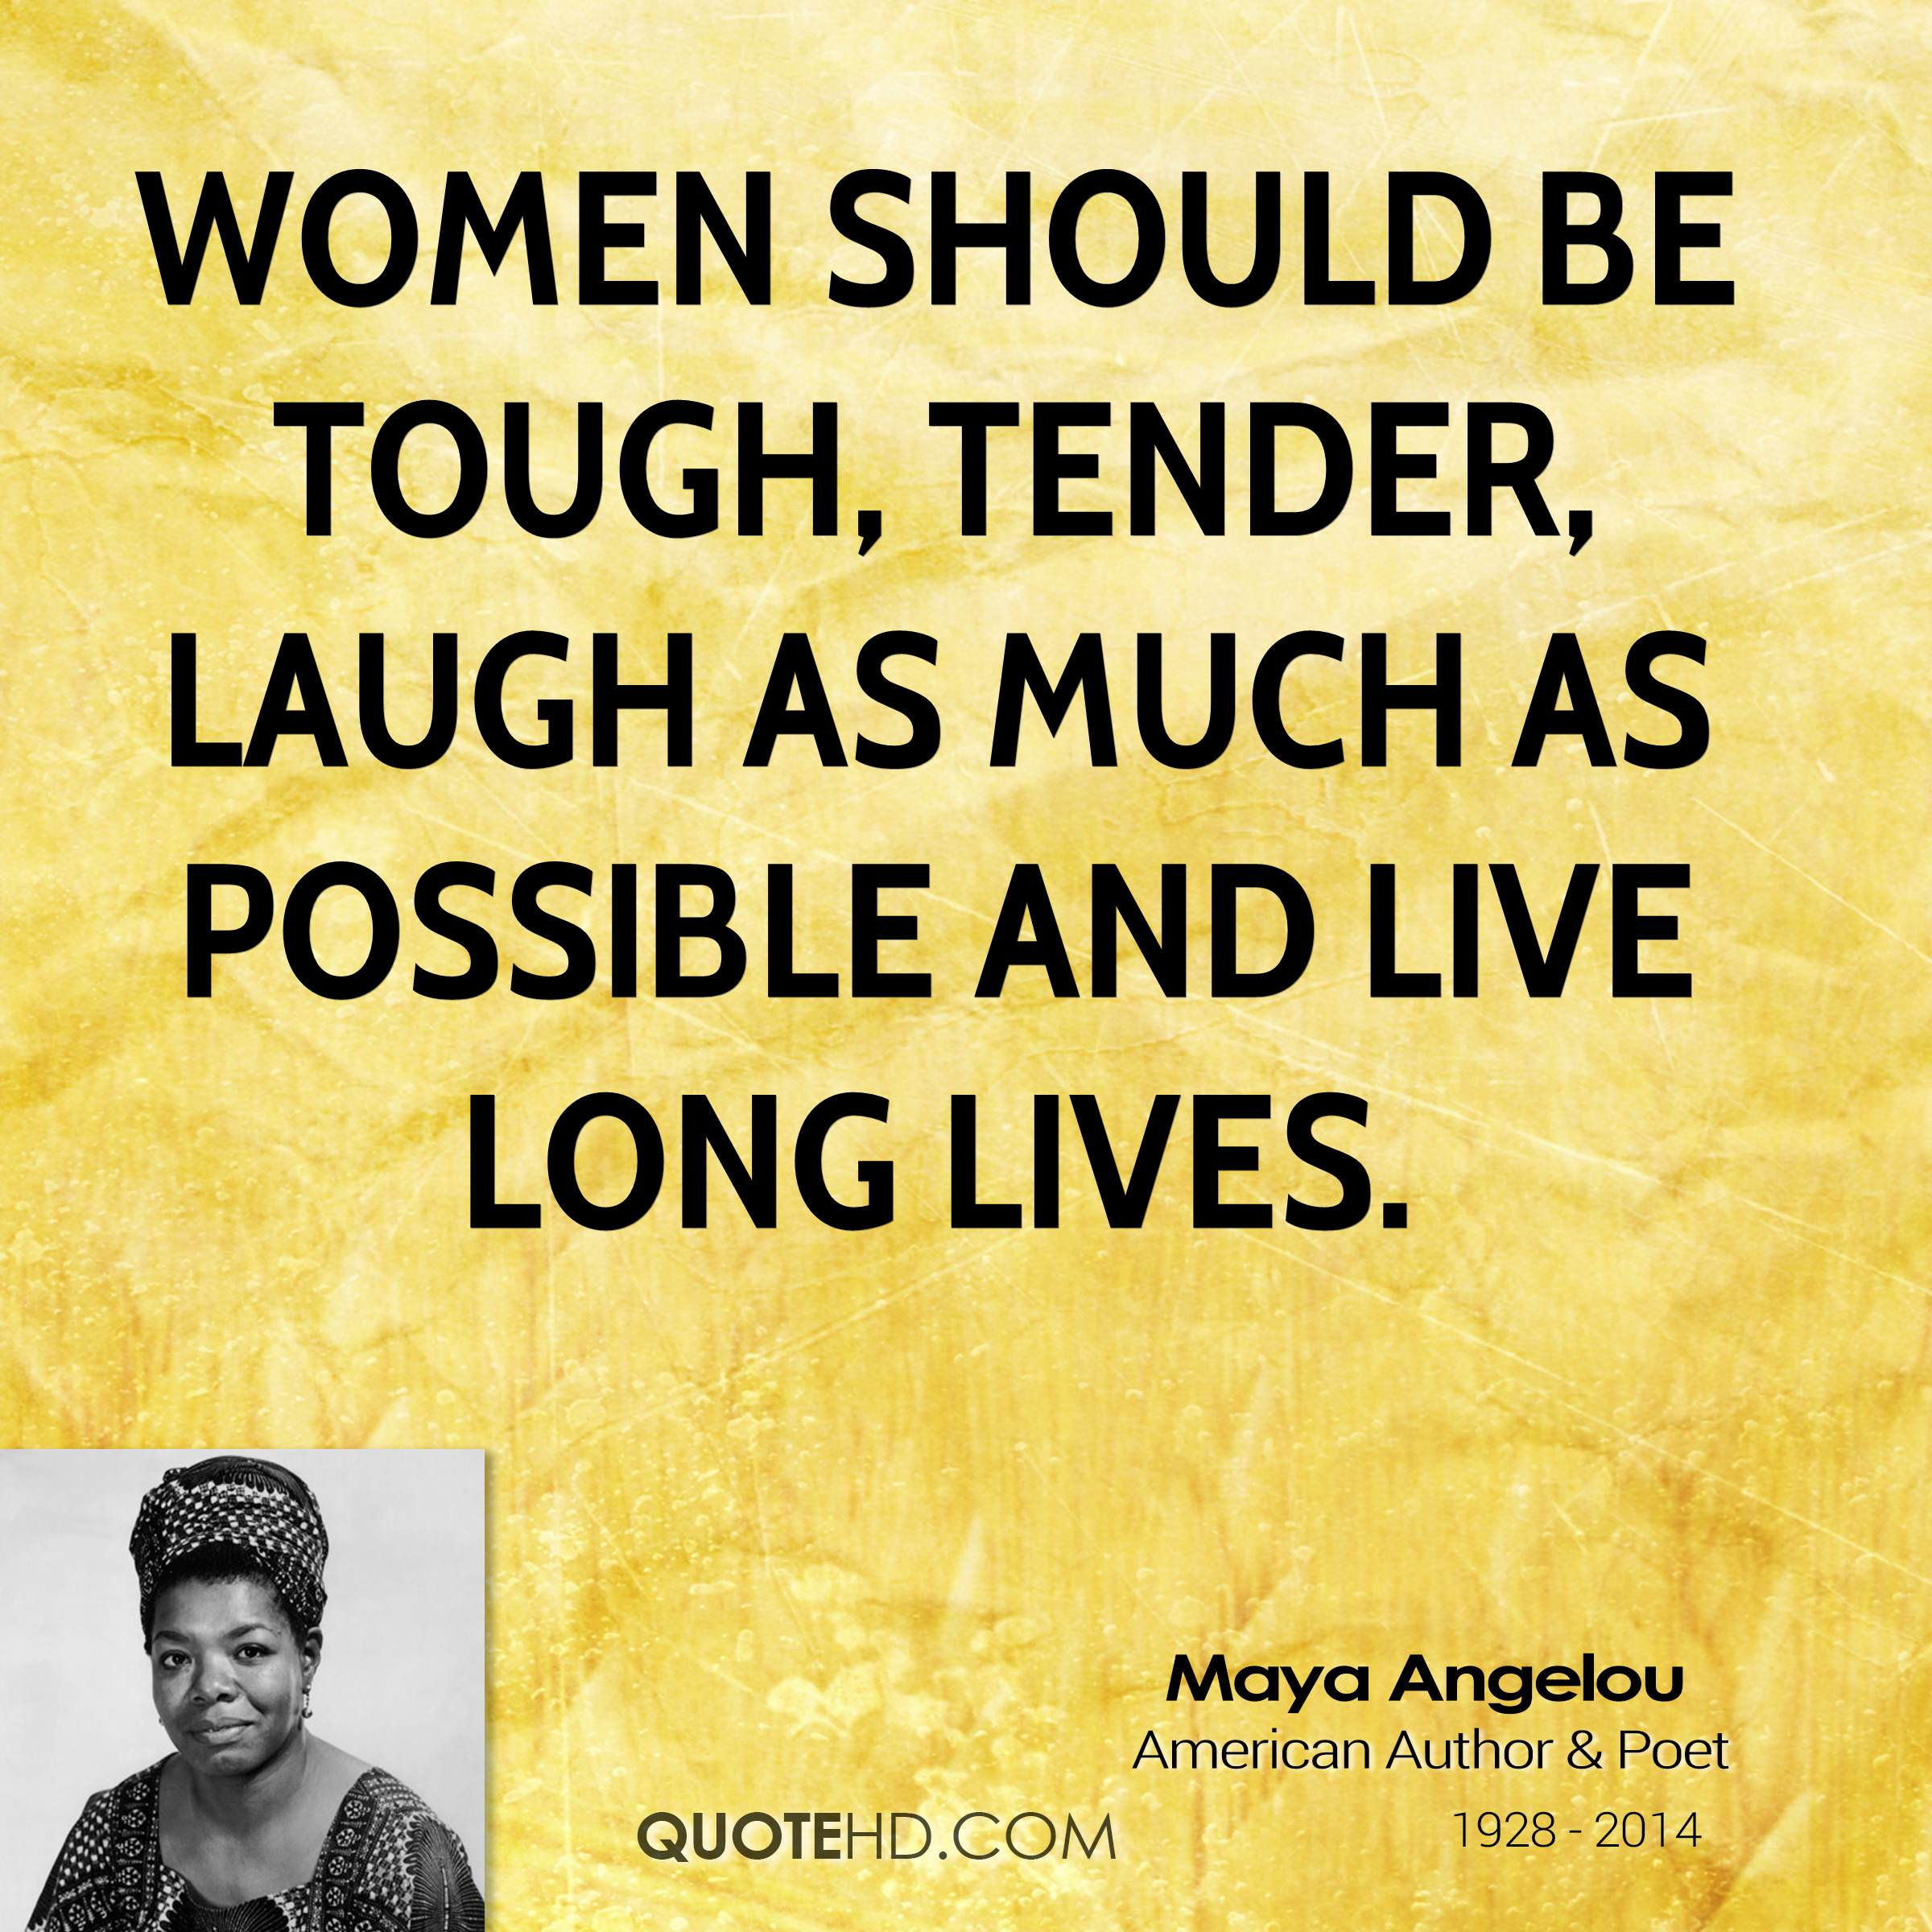 women should be tough, tender, laugh as much as possible and live long lives.